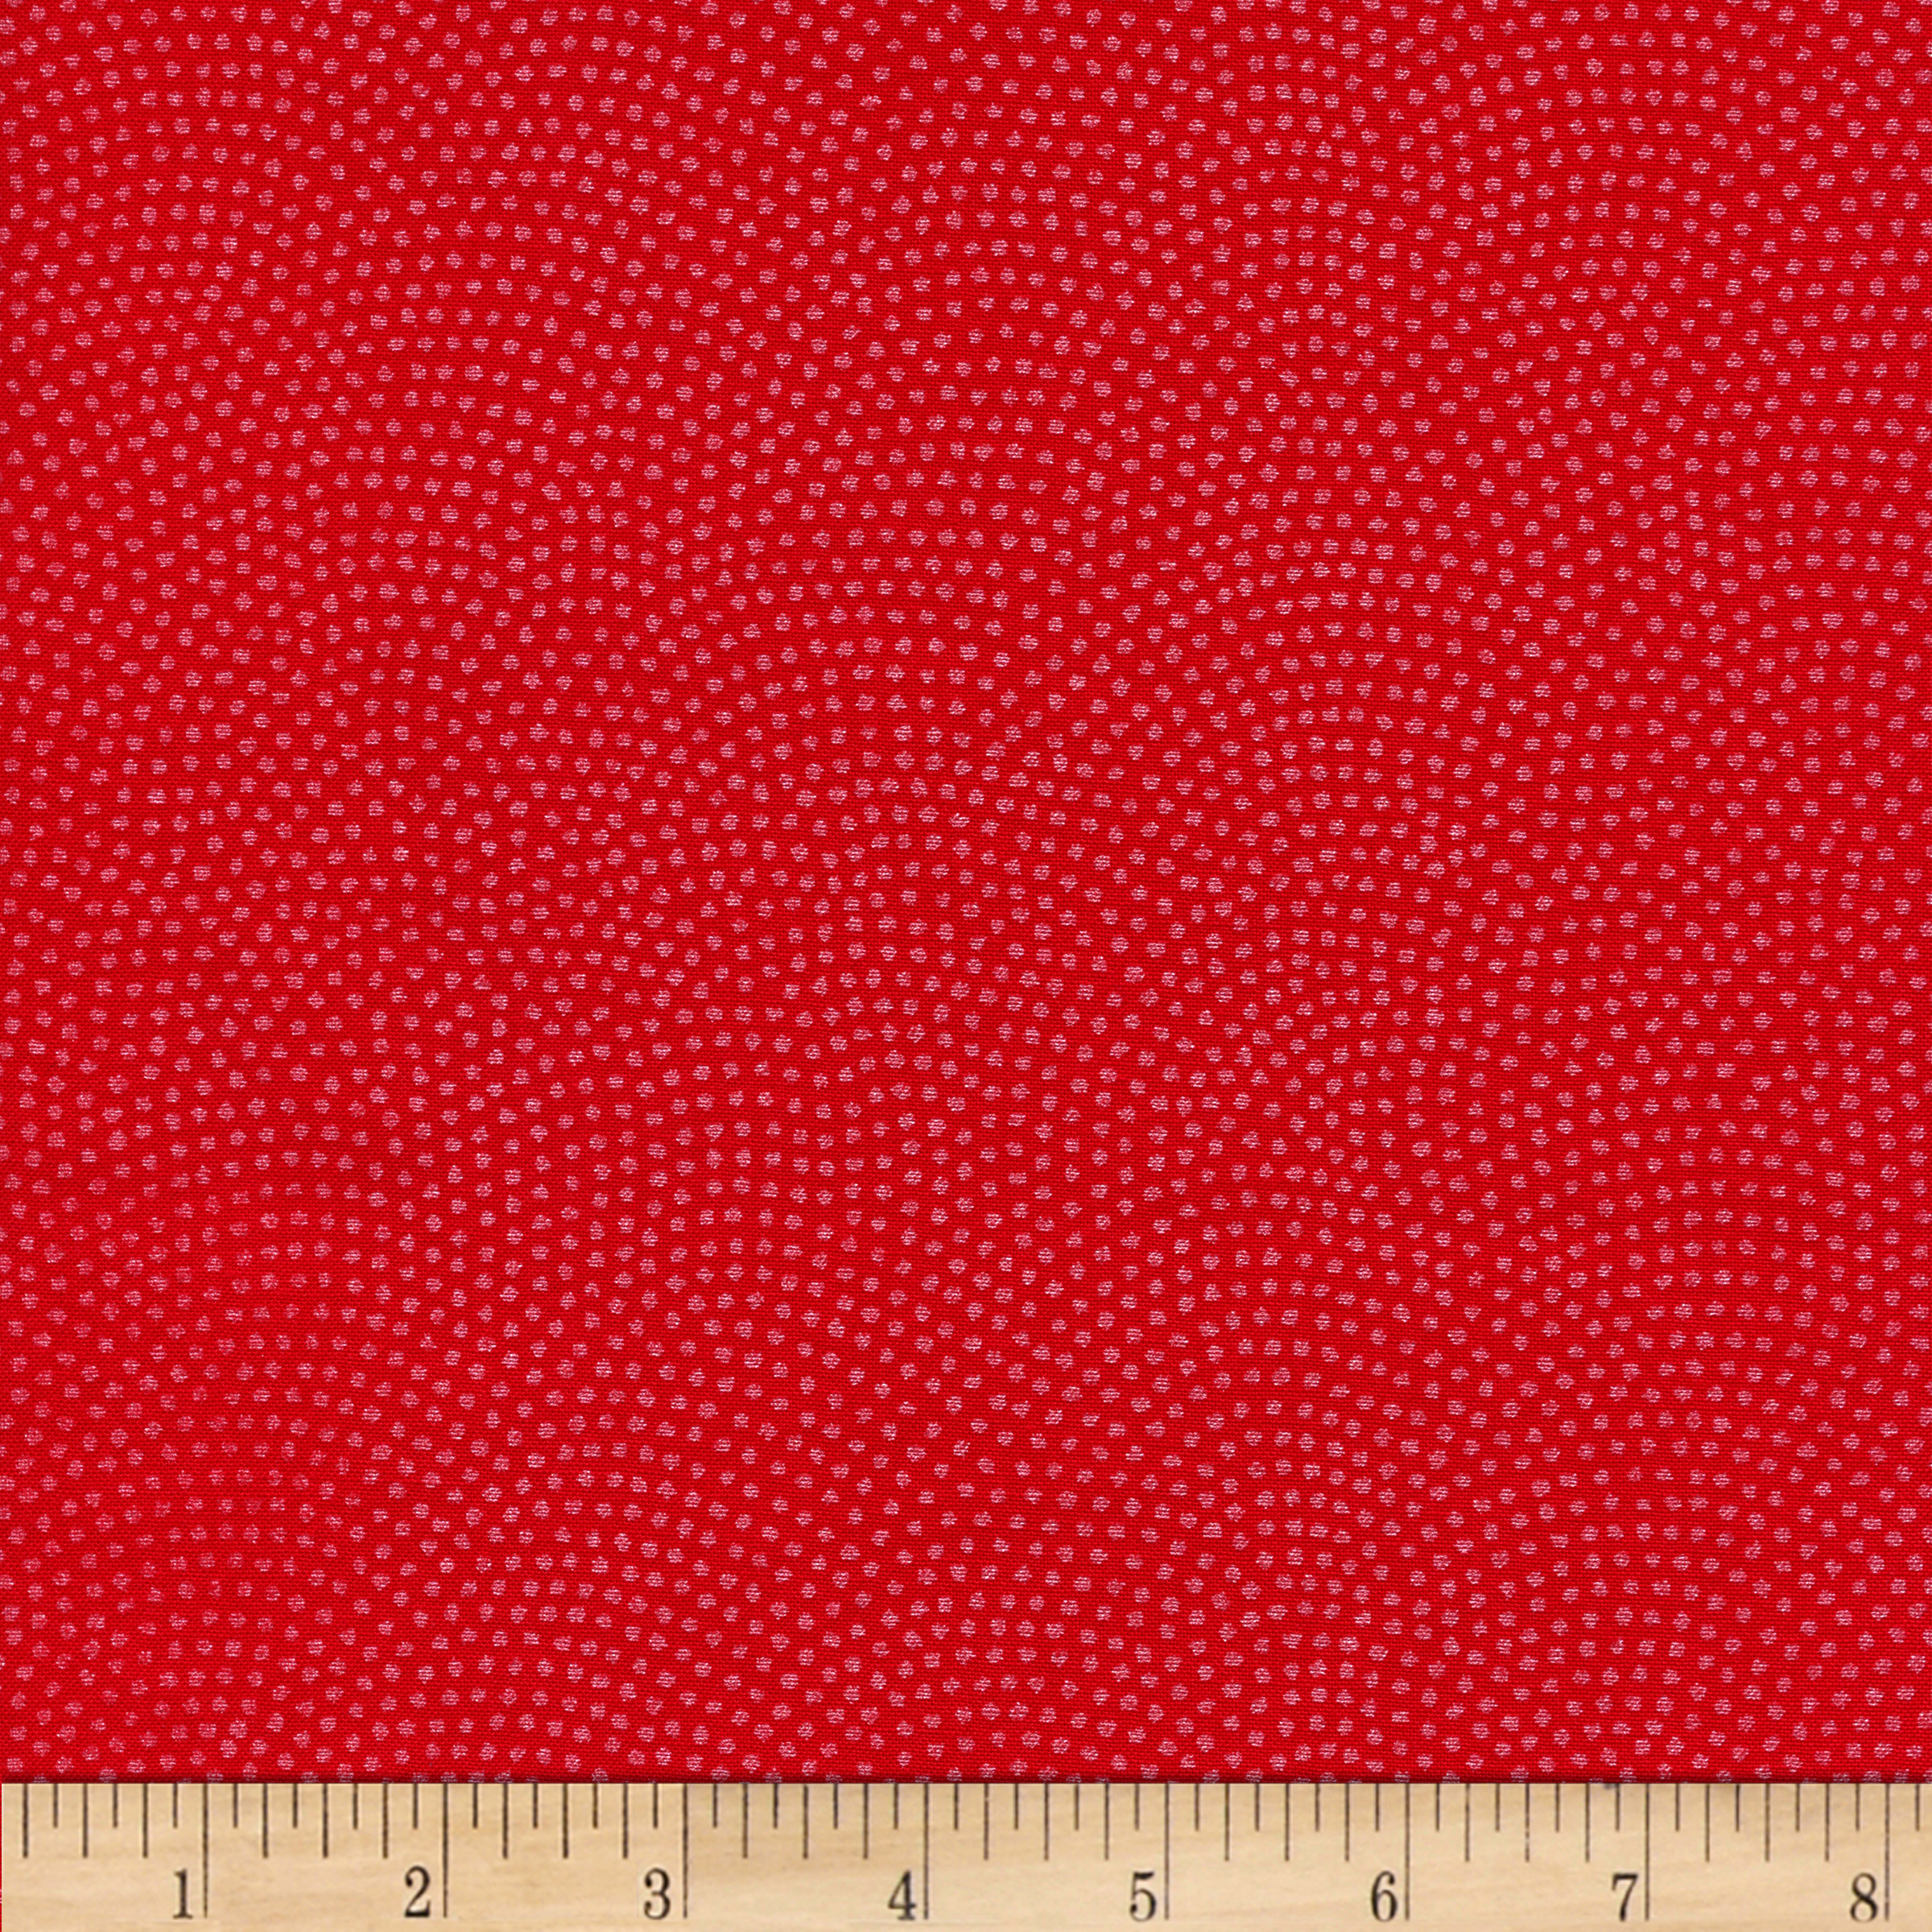 Timeless Treasures Dreaming in Pearle Dots Poppy Fabric